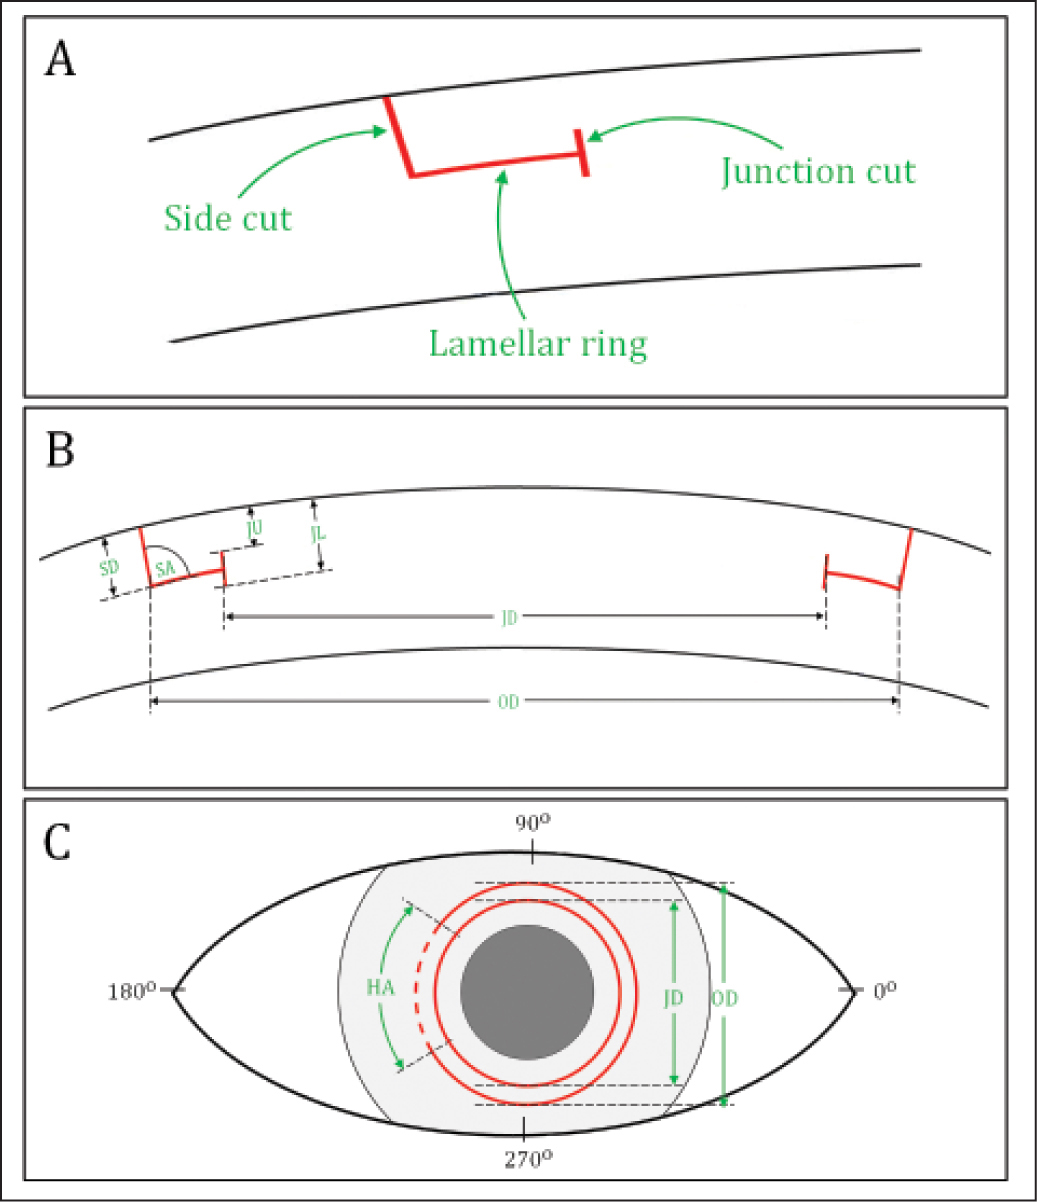 Illustrations of intrastromal incision permitted by VisuMax Circle option (Carl Zeiss Meditec, Jena, Germany). (A) The Circle option permits the creation of three basic components: a side cut with hinge, a lamellar ring, and a junction cut. (B) Cross-sectional view showing the adjustable femtosecond laser parameters to create the intrastromal incision. (C) Front view showing the user-selectable parameters to create the intrastromal incision. OD = outer diameter; JD = junction diameter; SD = side cut depth; SA = side cut angle; HA = hinge angle; JU = junction upper depth; JL = junction lower depth